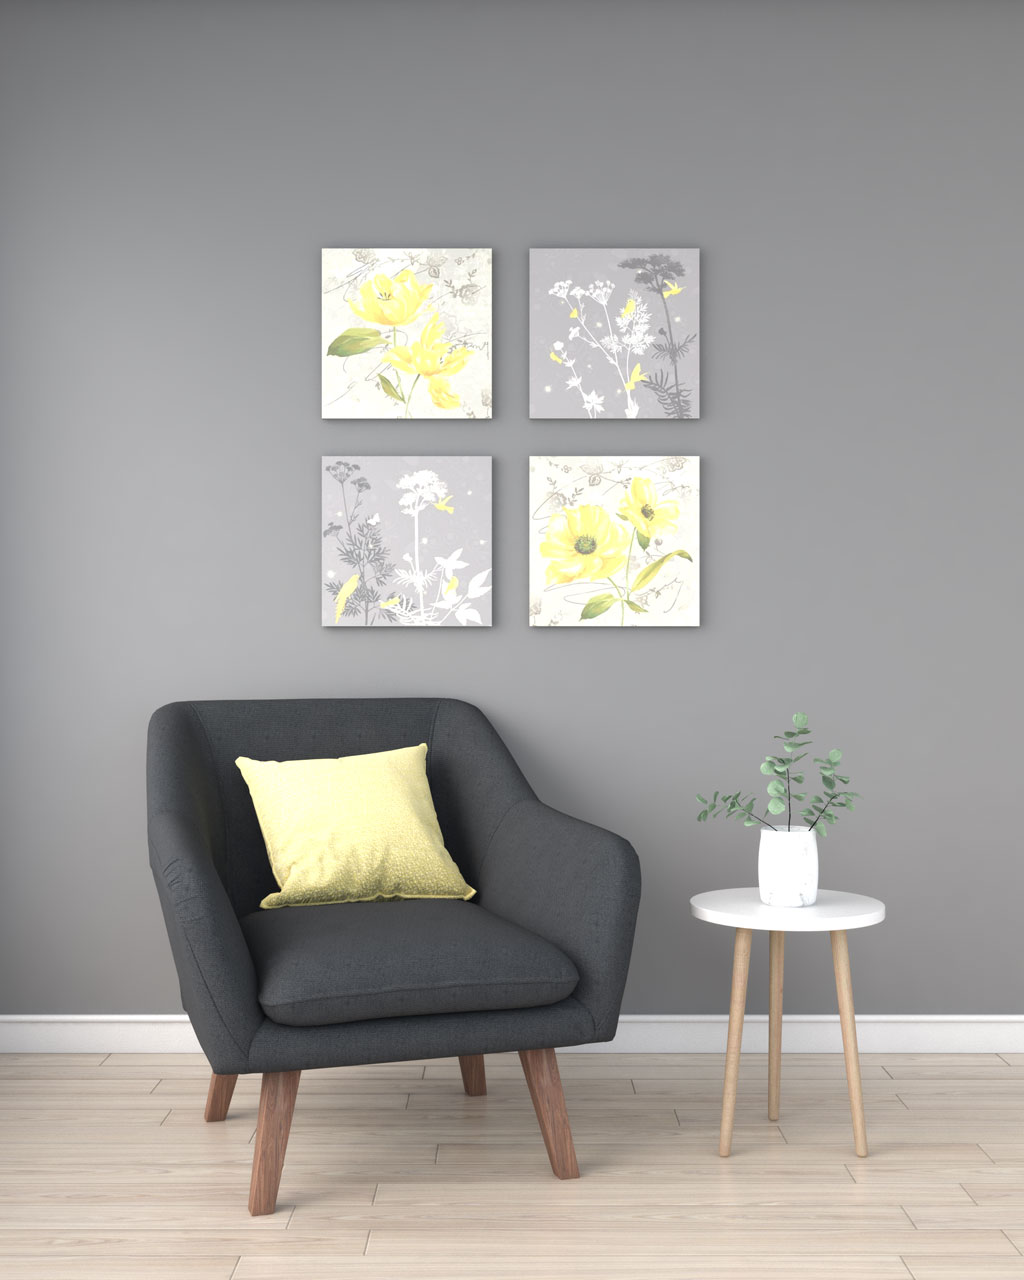 Light yellow accent with gray wall